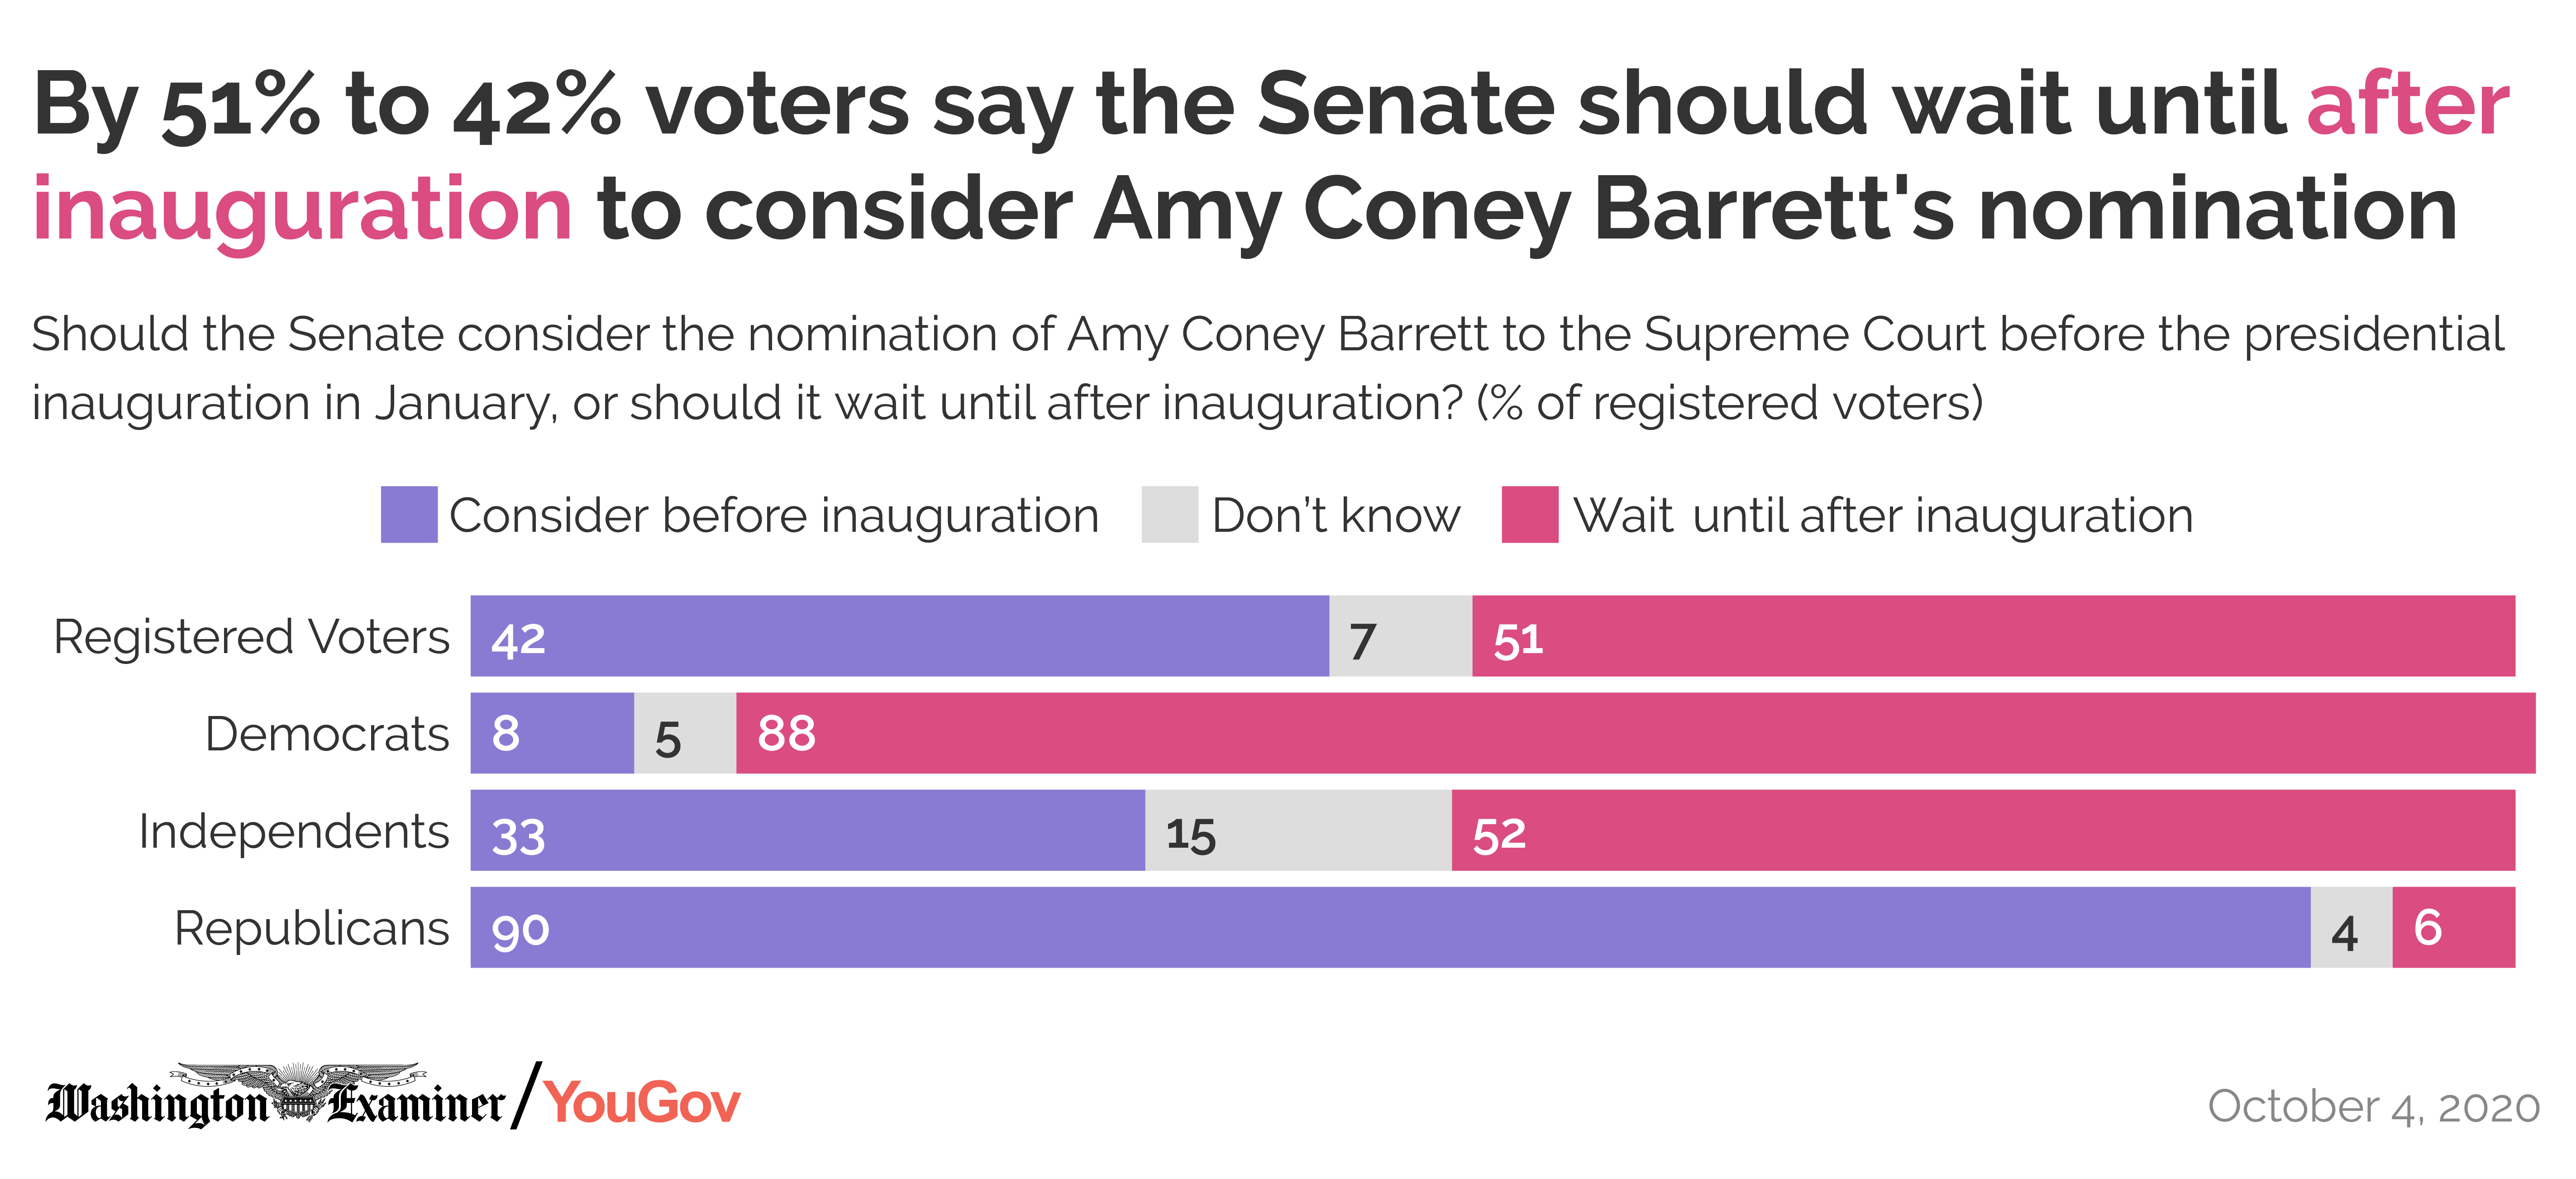 By 51% to 42% voters say the Senate should wait until after inauguration to consider Amy Coney Barrett's nomination